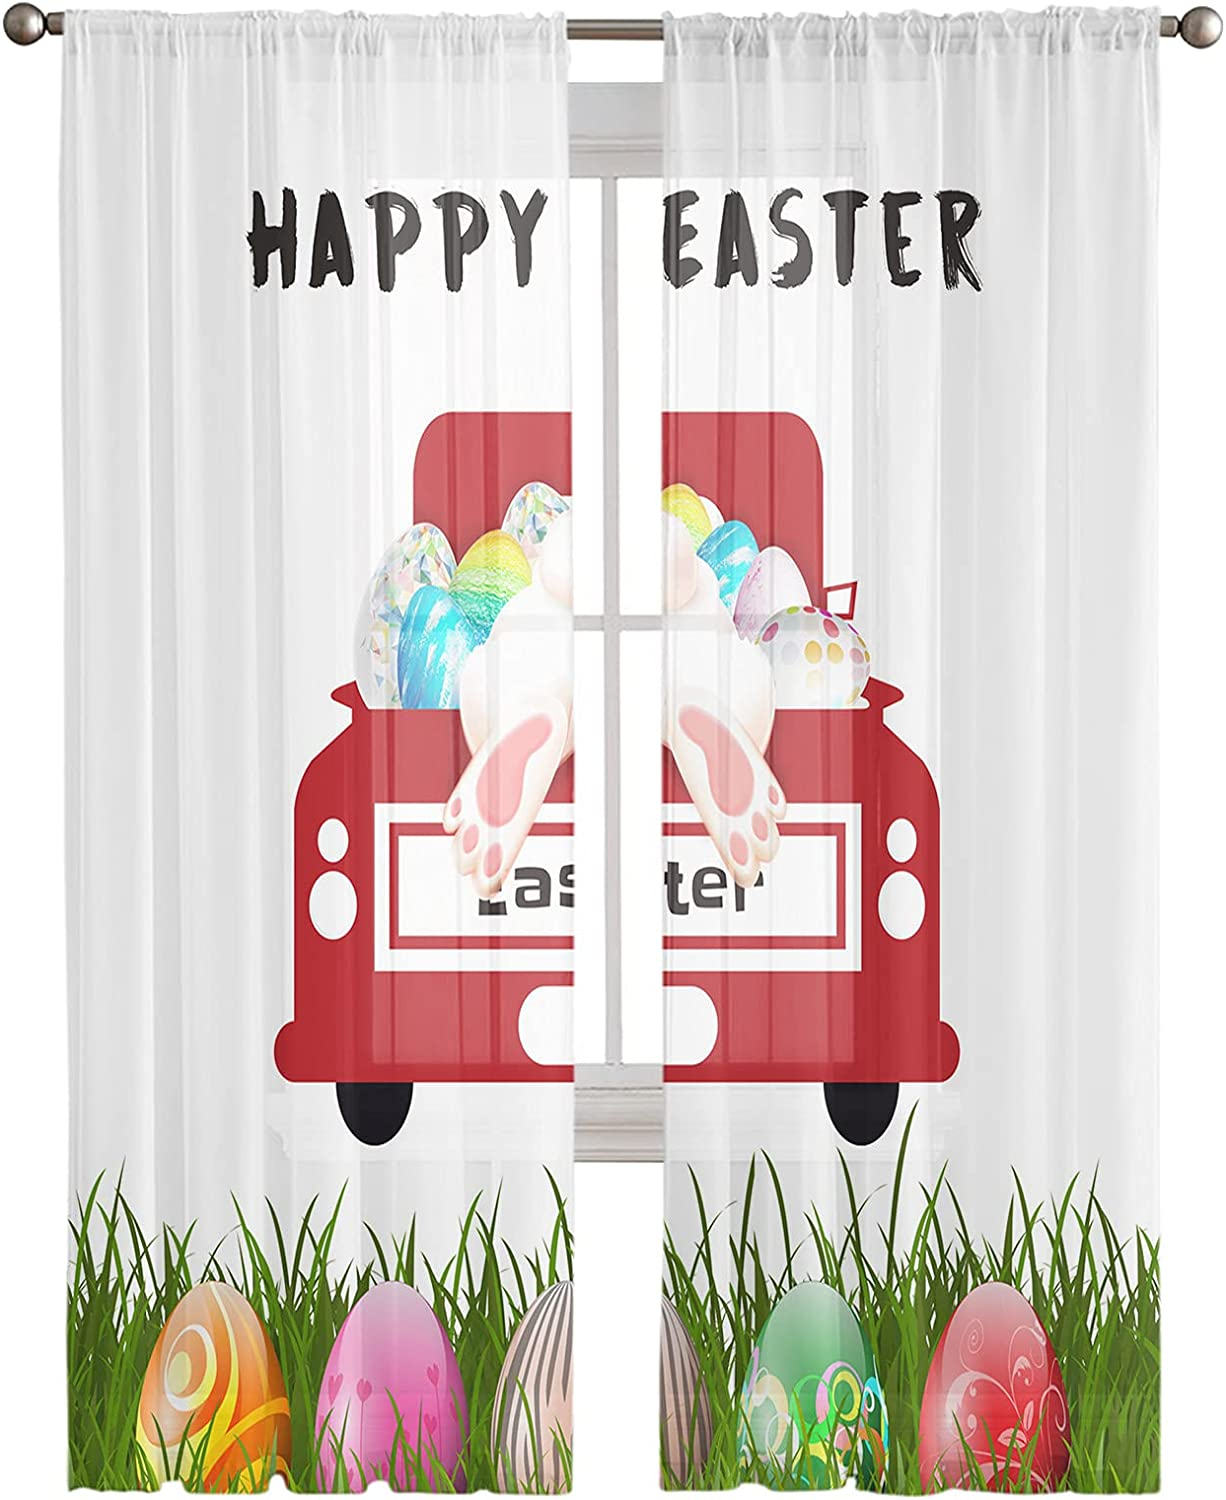 Voile Sheer Curtain Panels Save money 108inches Columbus Mall Easter Long Rod Happy Poc